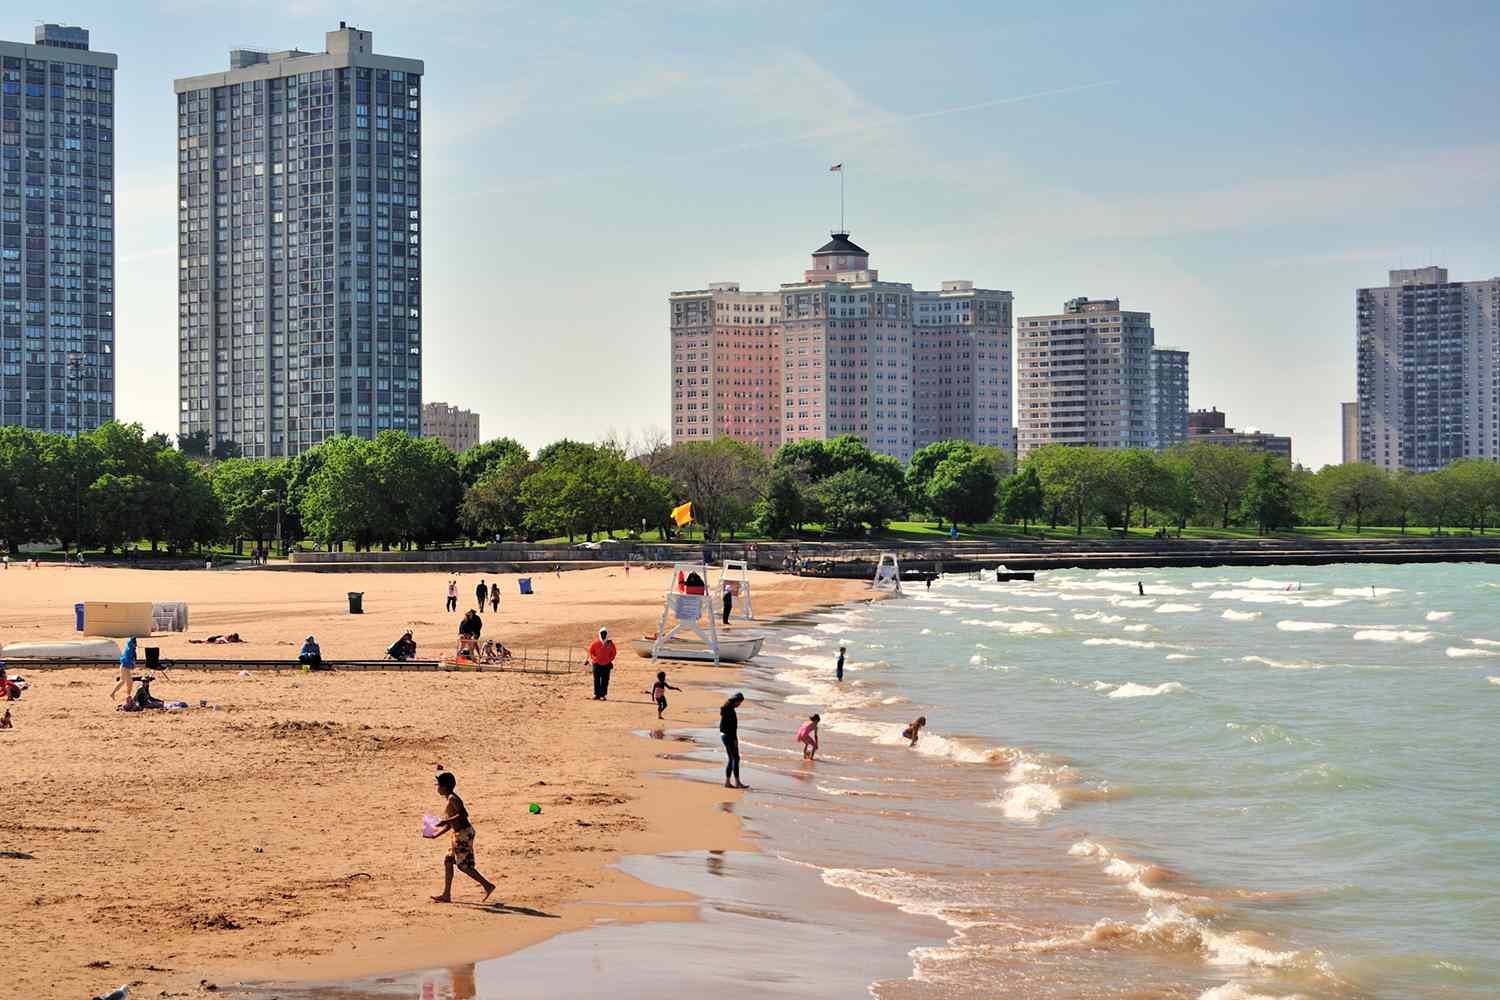 Looking down the shoreline at Foster Avenue Beach in Chicago